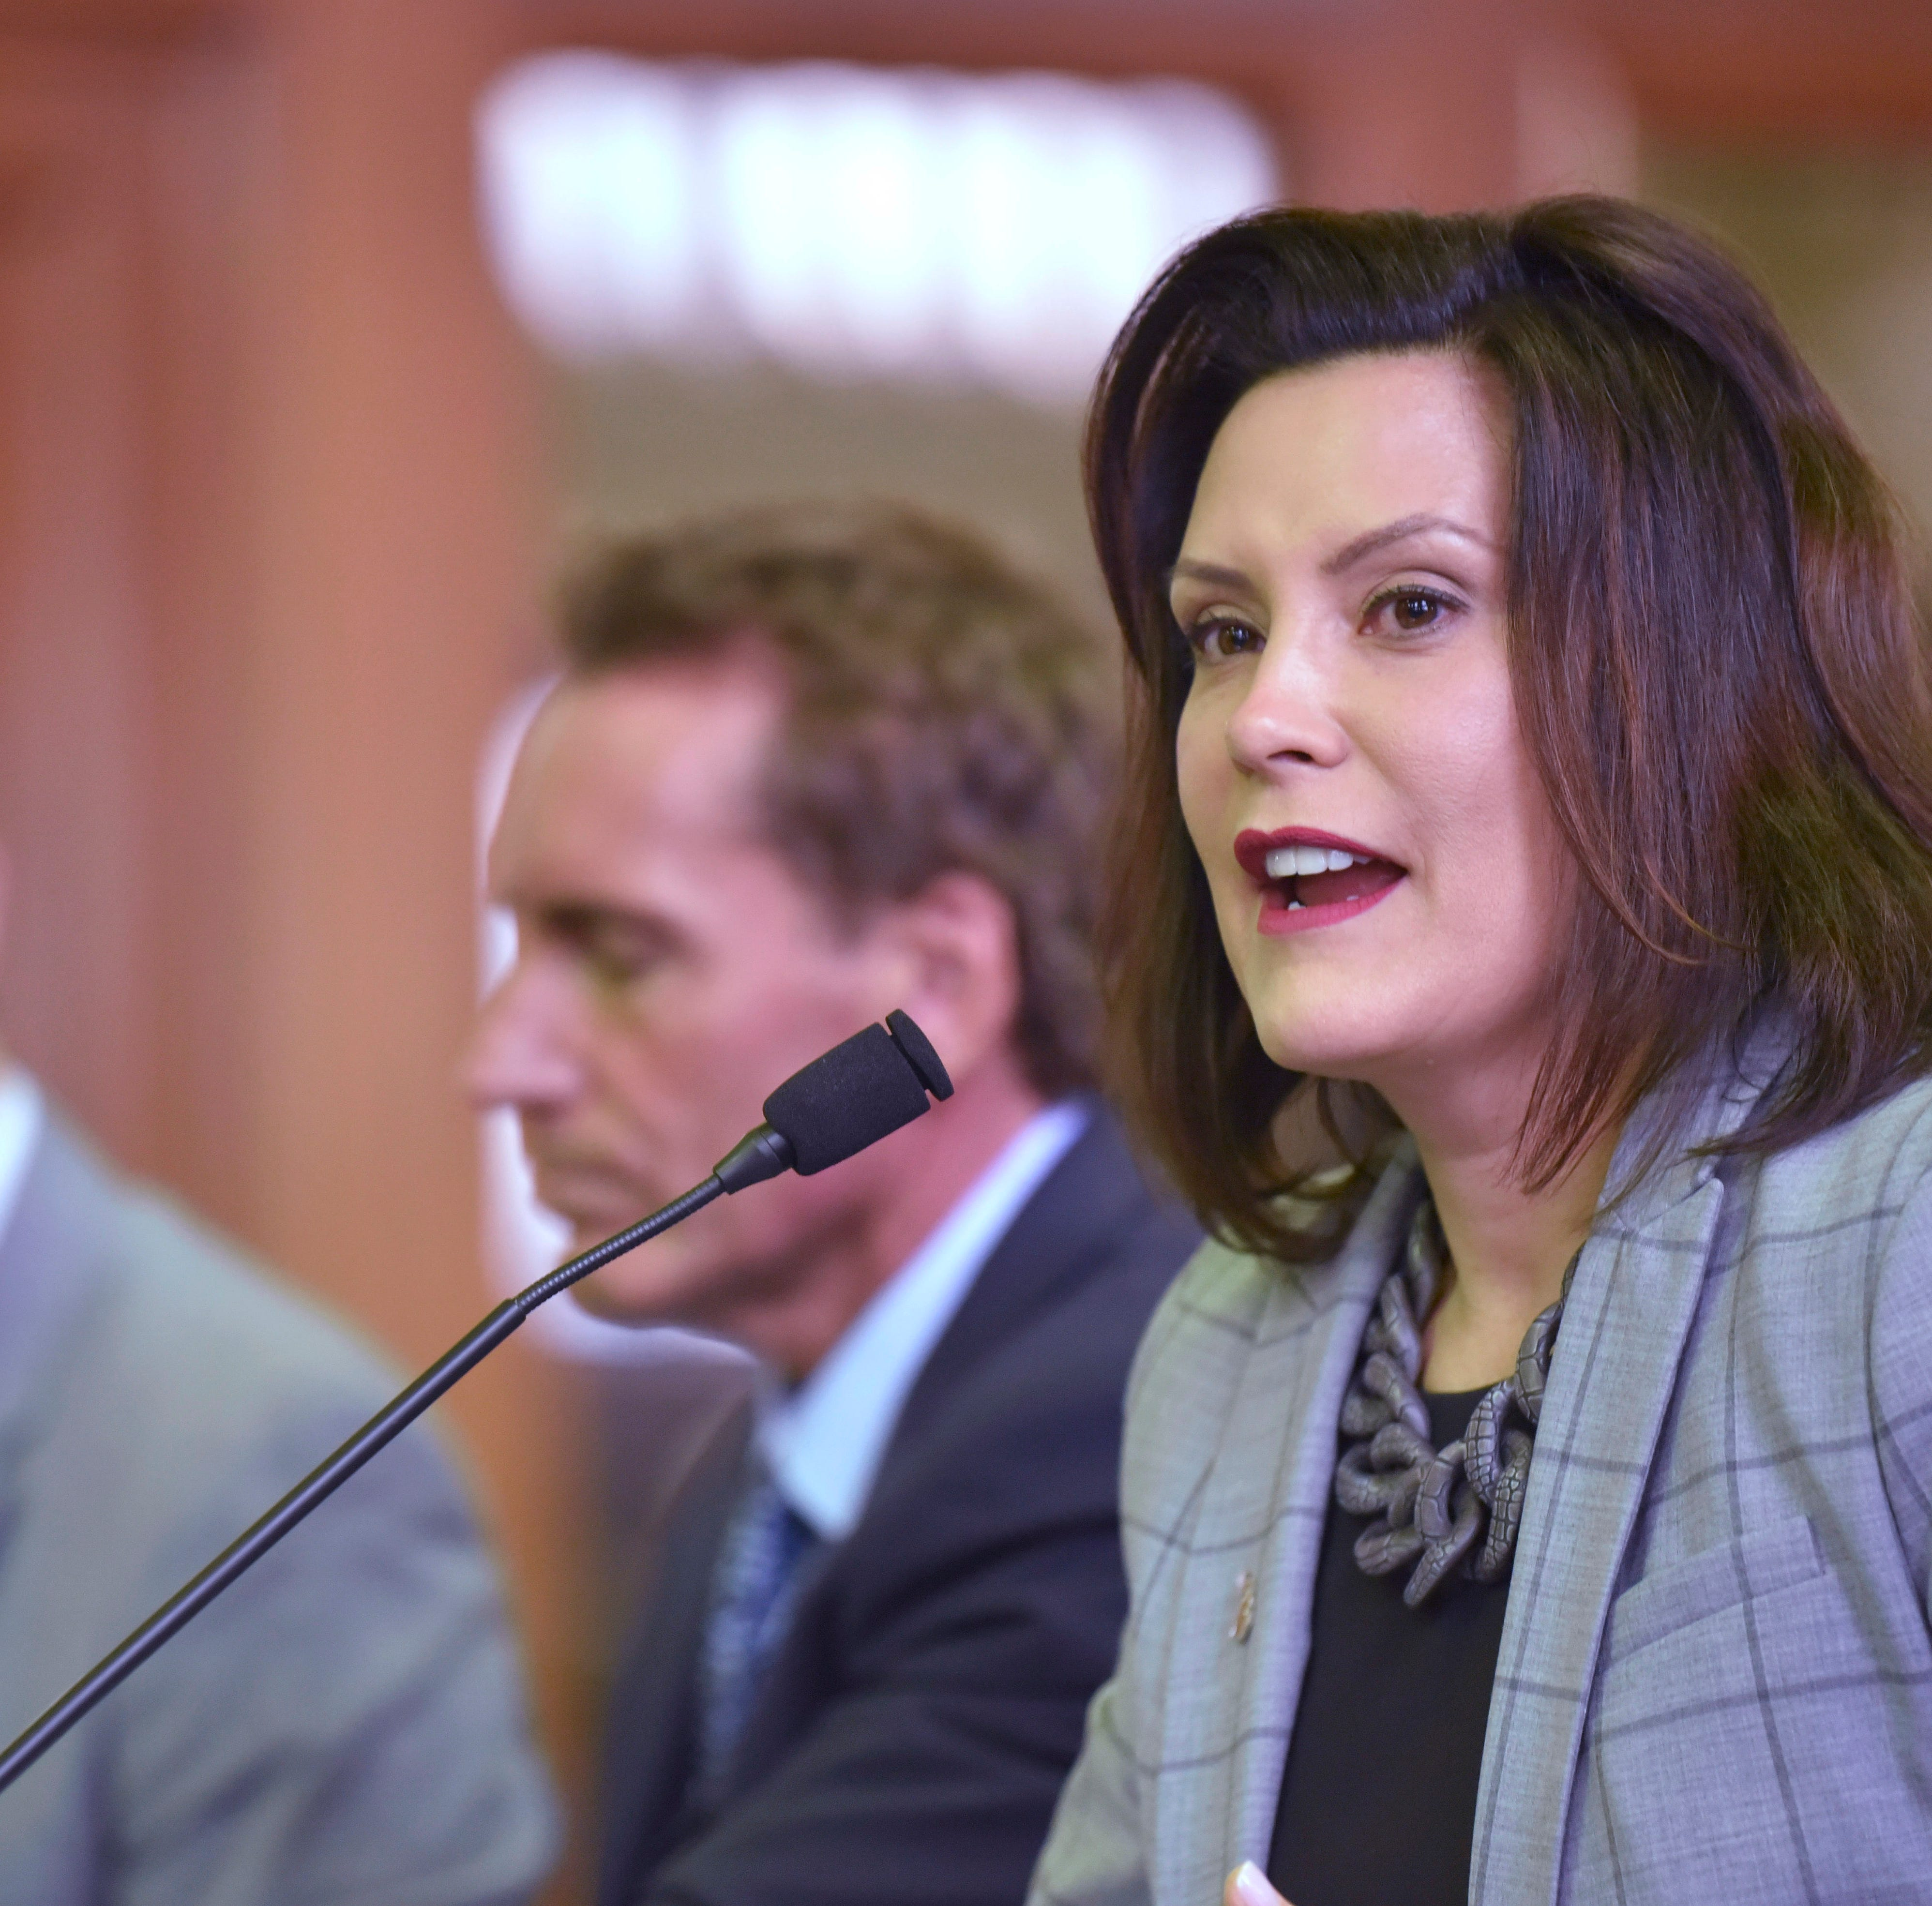 Five years into water crisis, Whitmer works to 'earn back trust'